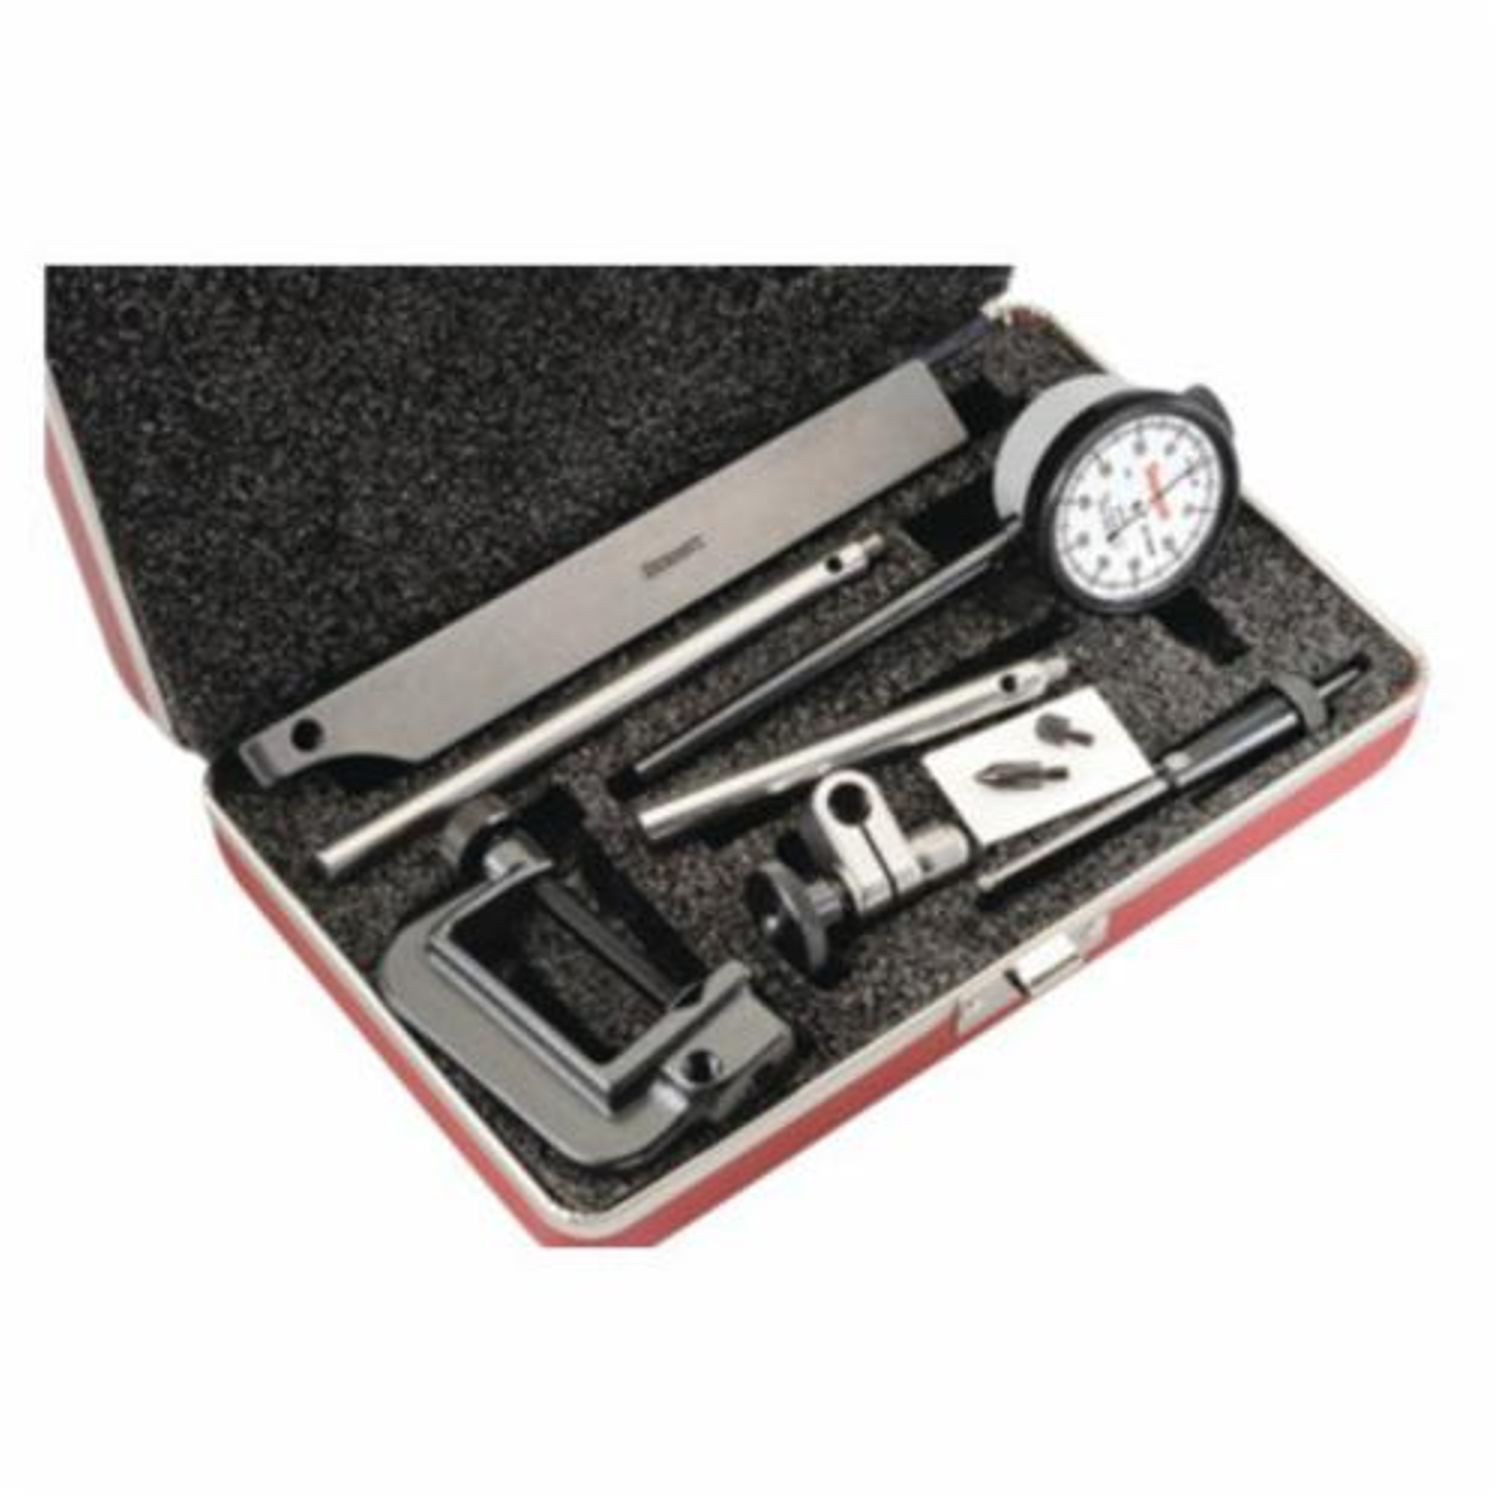 hight resolution of starrett 650a5z 650 series back plunger dial indicator with deep hole attachment 0 2 in 0 to 50 dial reading 0 001 in 1 11 16 in dial